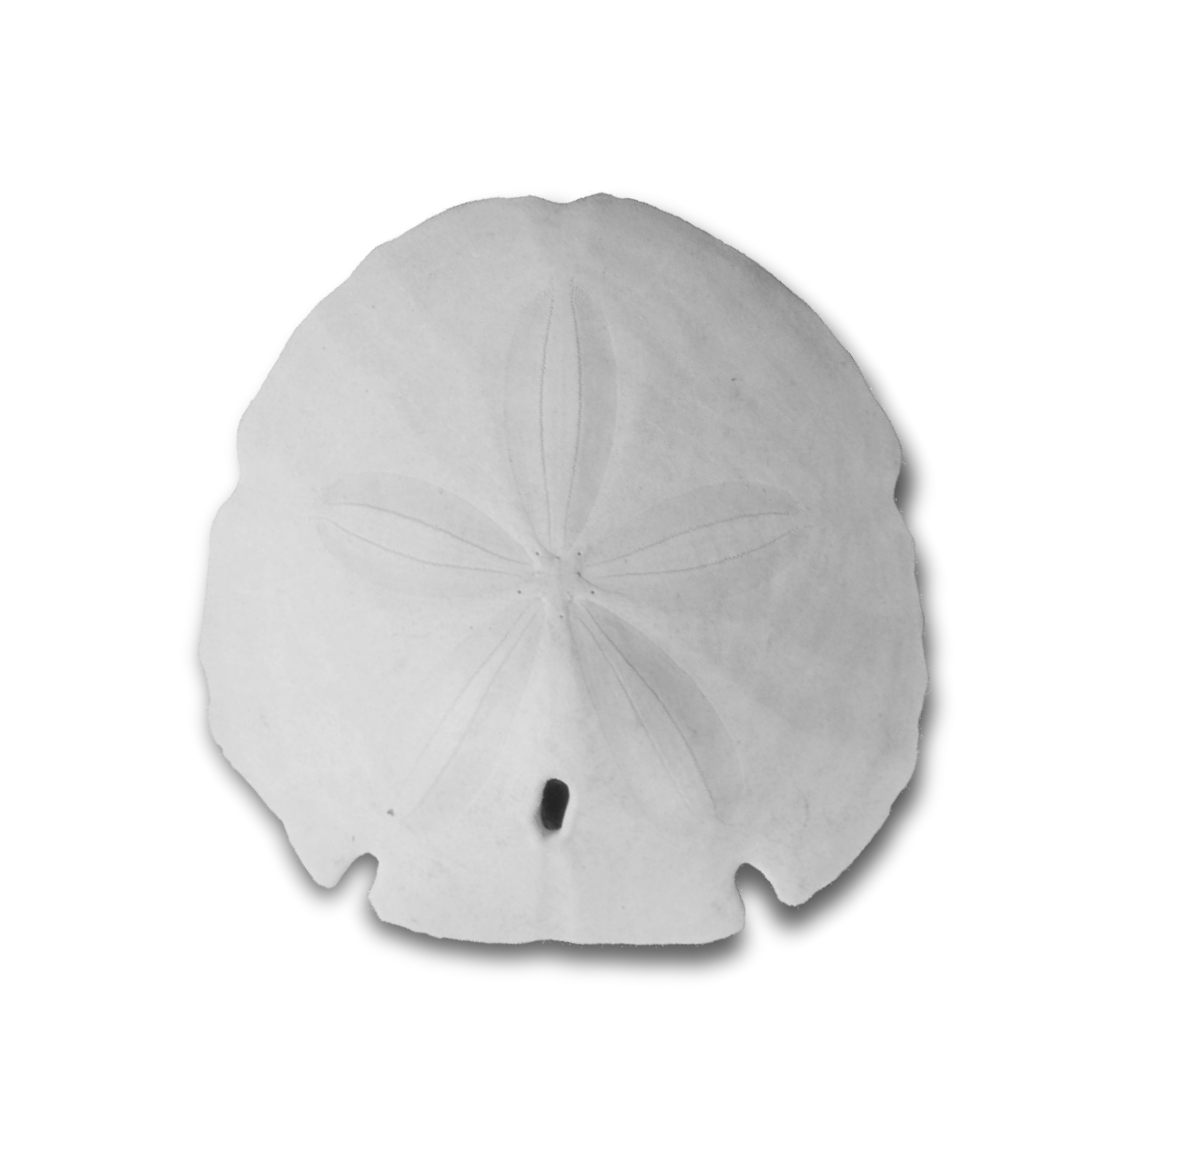 white sand dollar - Sand Dollar PNG Black And White